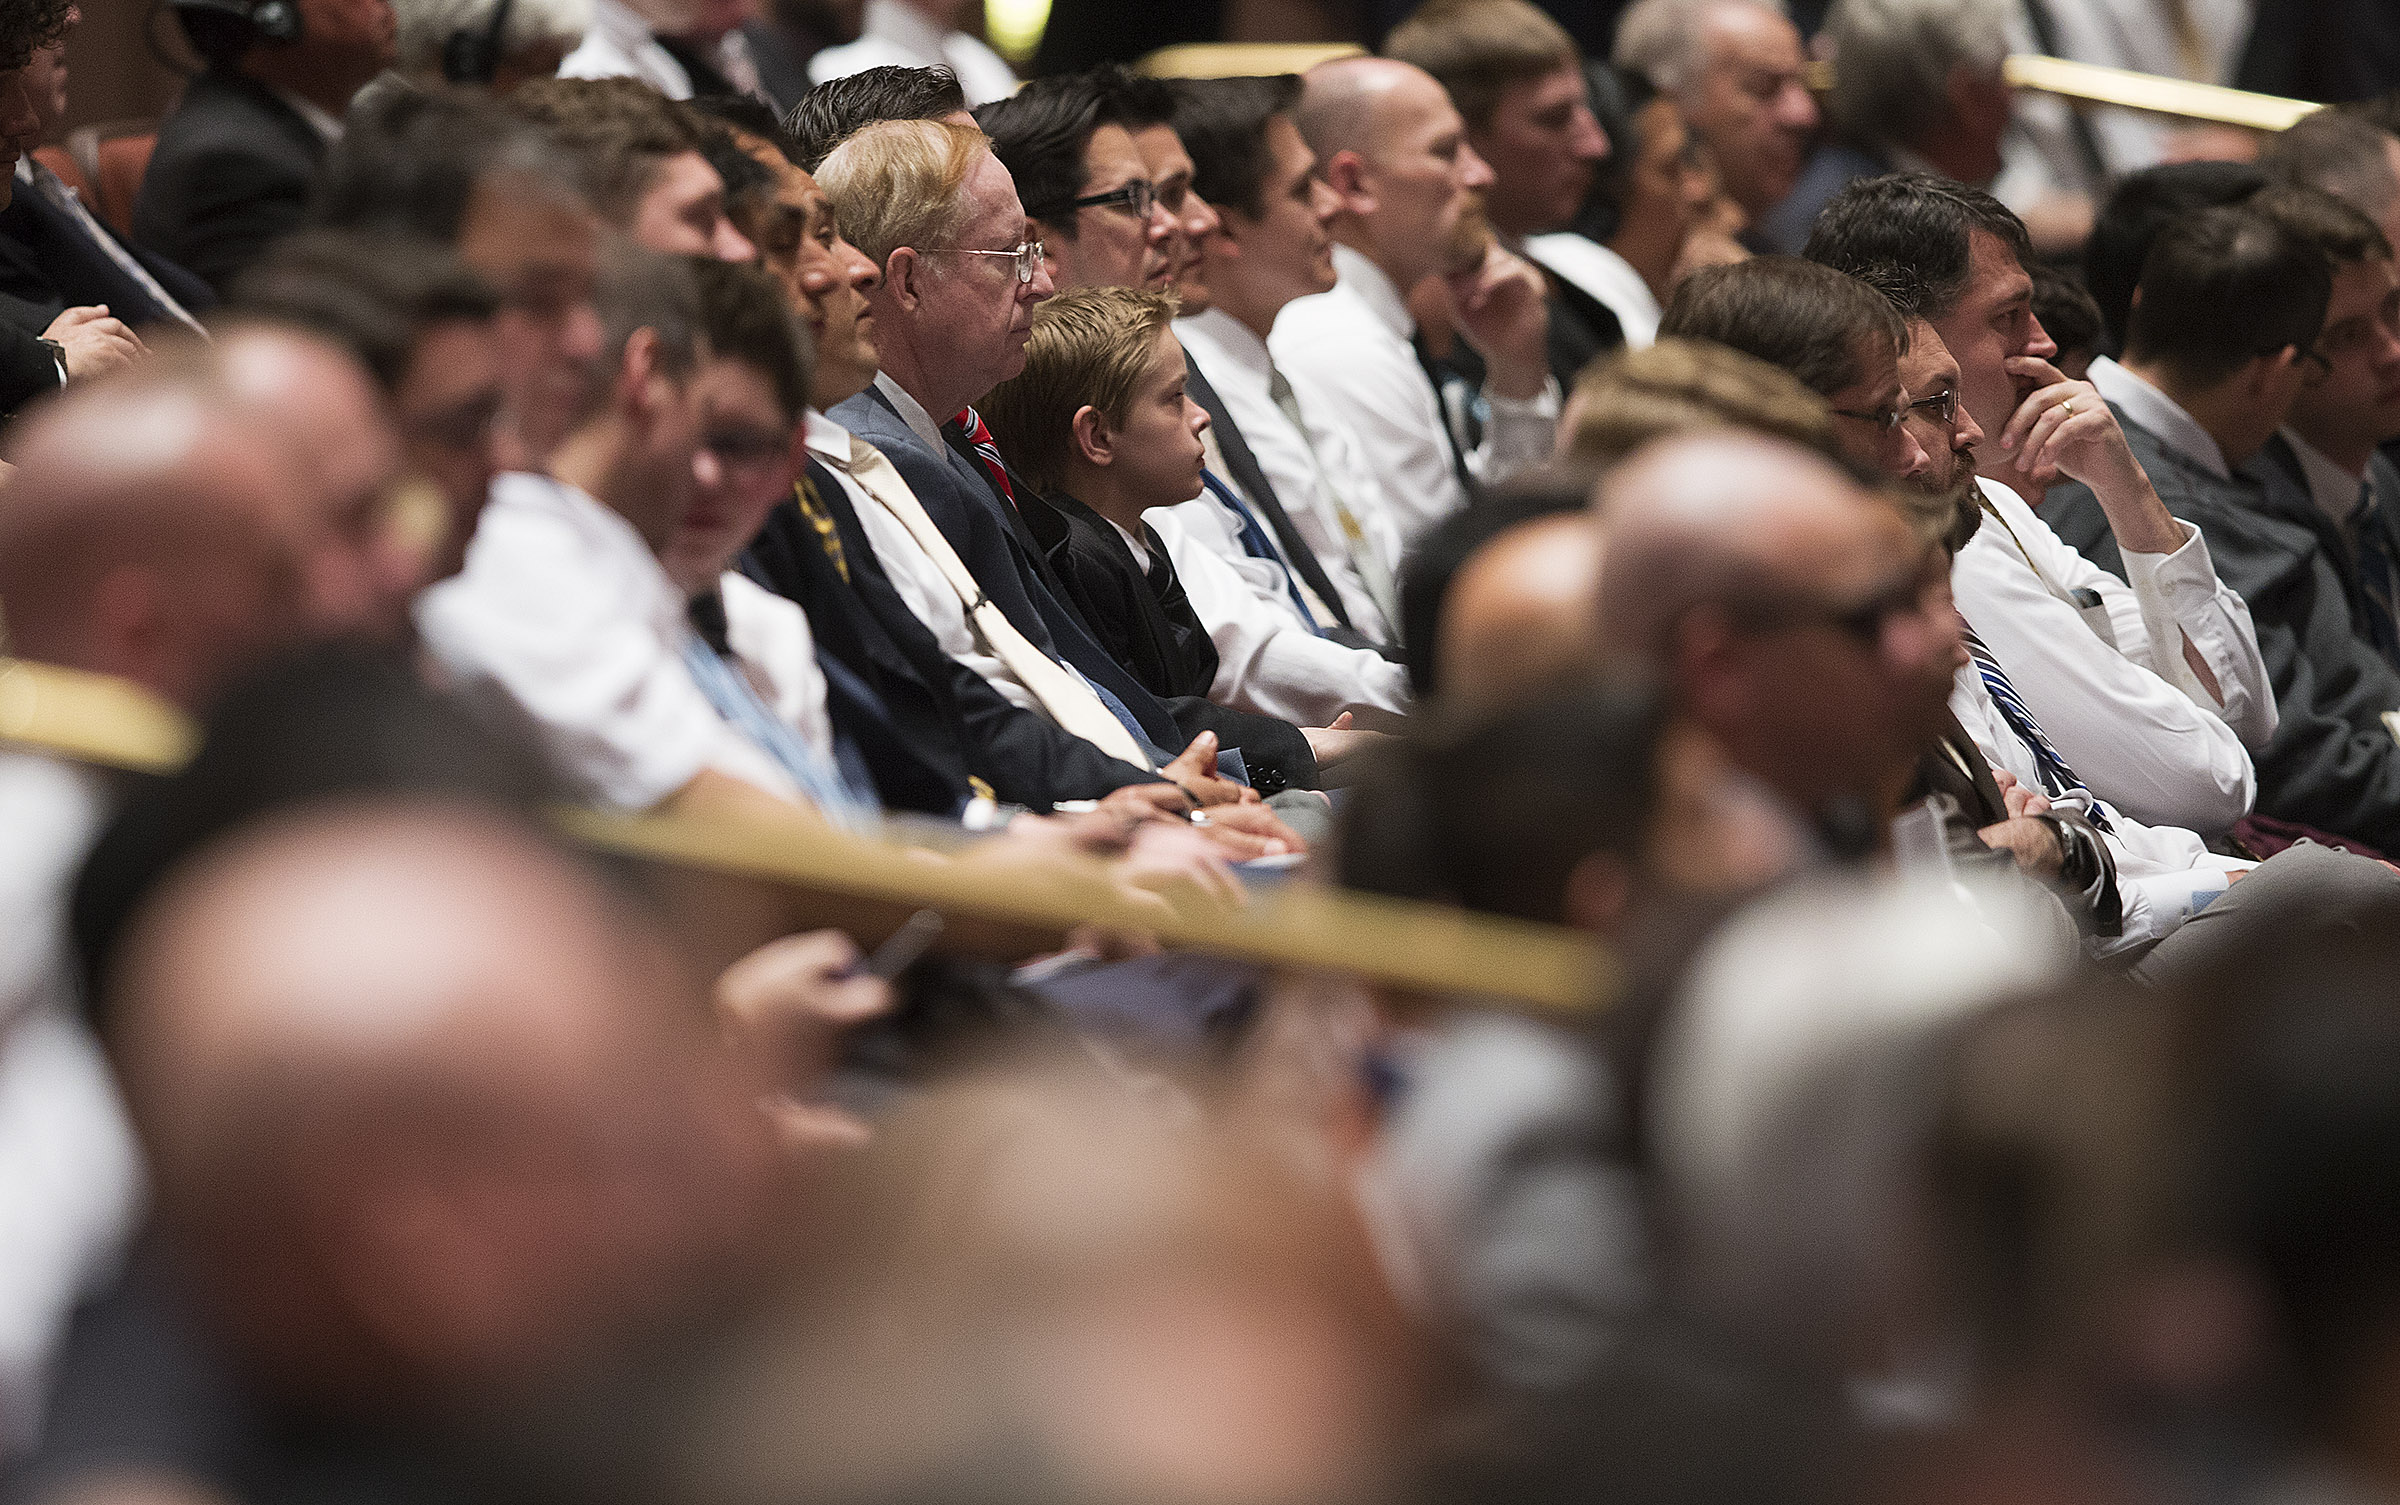 Audience members listen during the General Priesthood session of the 188th Annual General Conference of The Church of Jesus Christ of Latter-day Saints, in the Conference Center in Salt Lake City on Saturday, March 31, 2018.